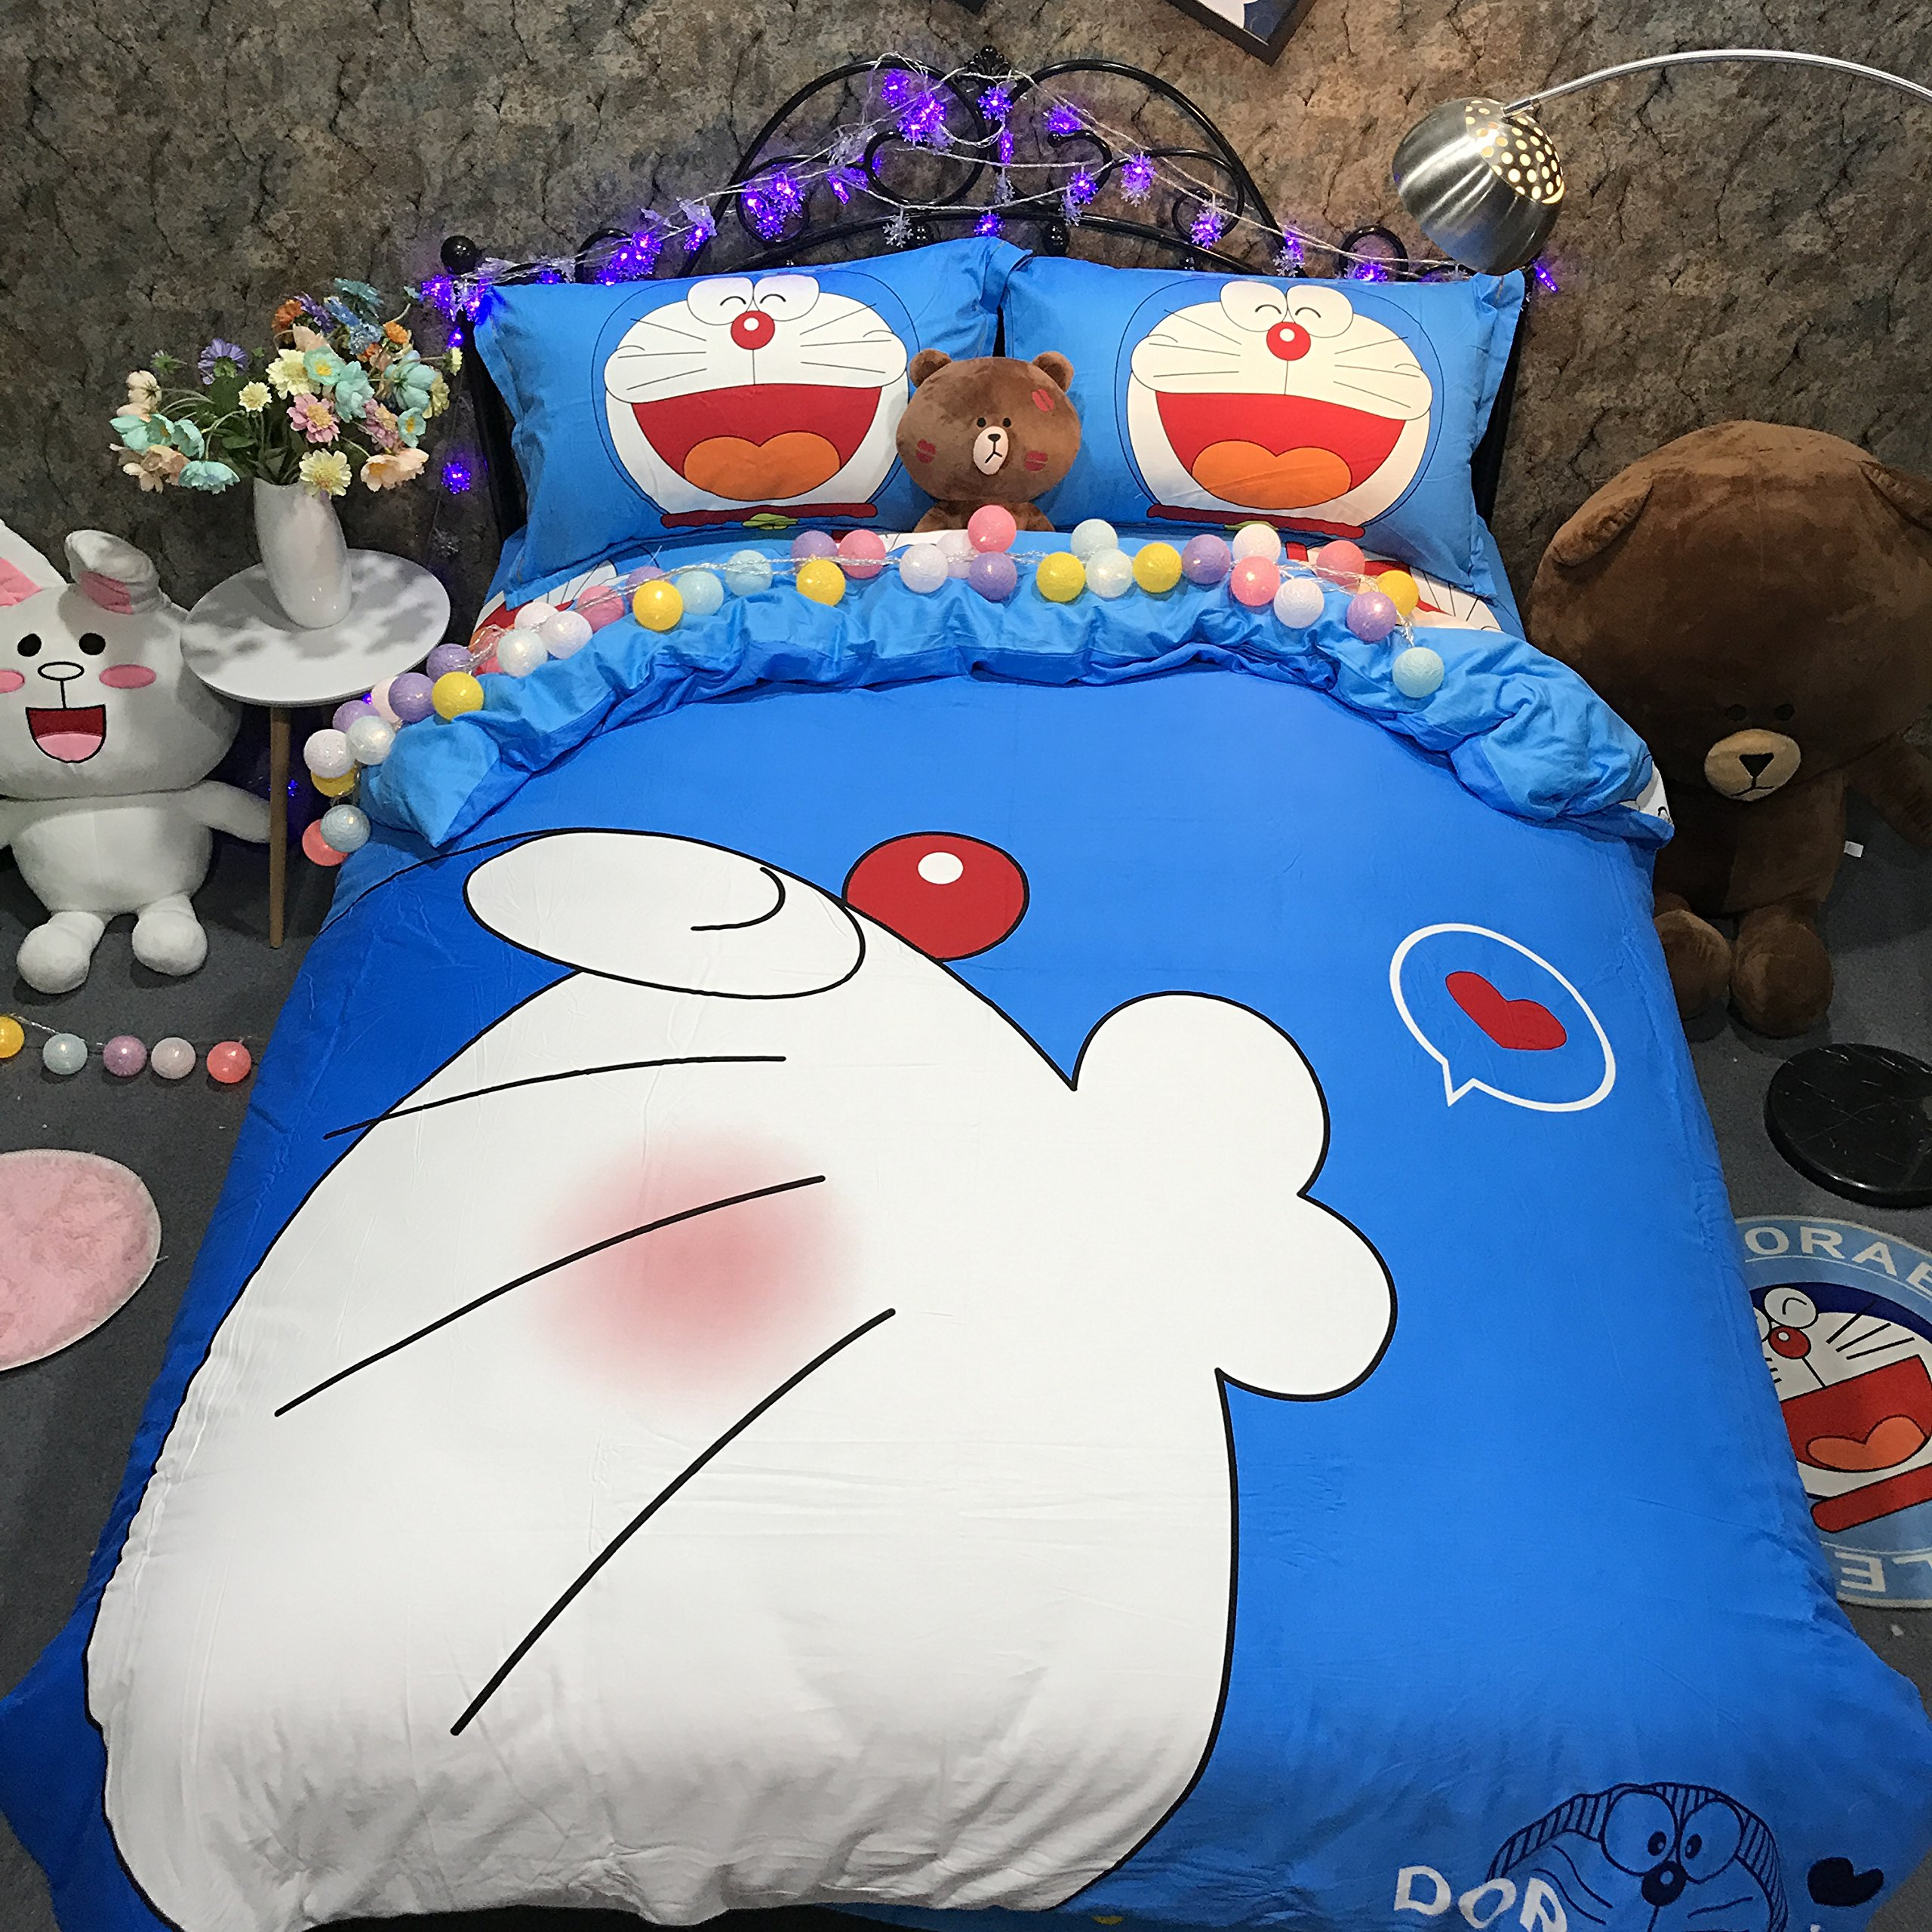 CASA 100% Cotton Kids Bedding Set Boys Girls Doraemon the First Duvet cover and Pillow cases and Flat sheet,Boys Girls,4 Pieces,King